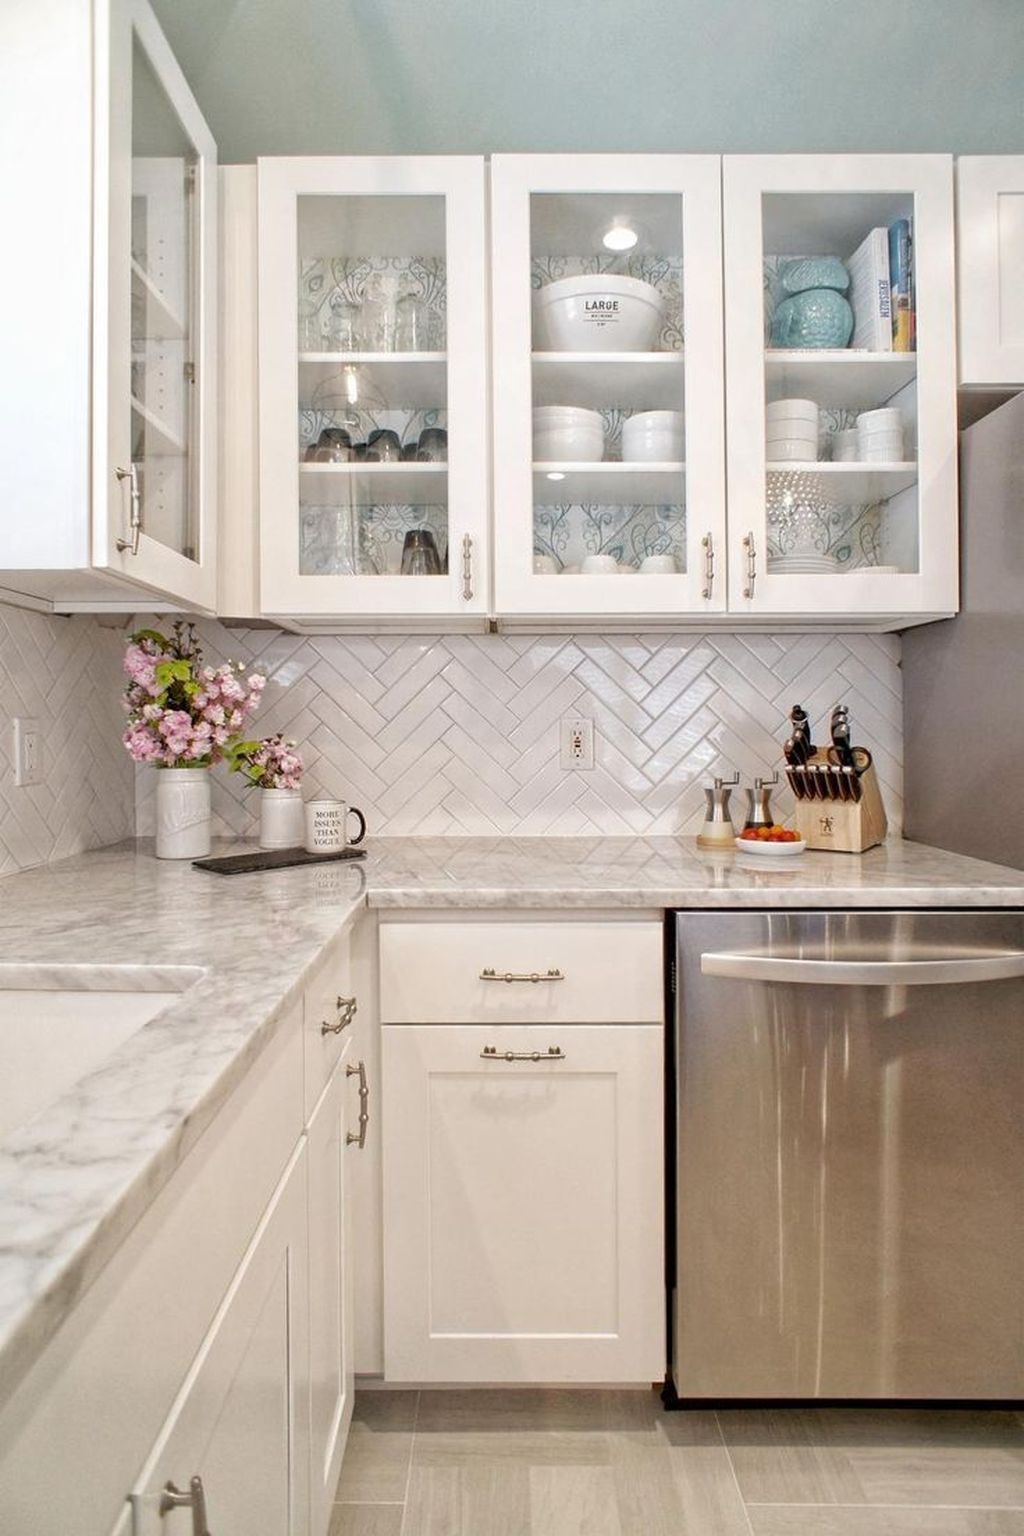 Inspired White Subway Tile Backsplash Trend Seattle Traditional Kitchen Decorating Ideas With B Kitchen Remodel Small Kitchen Design Small Kitchen Inspirations